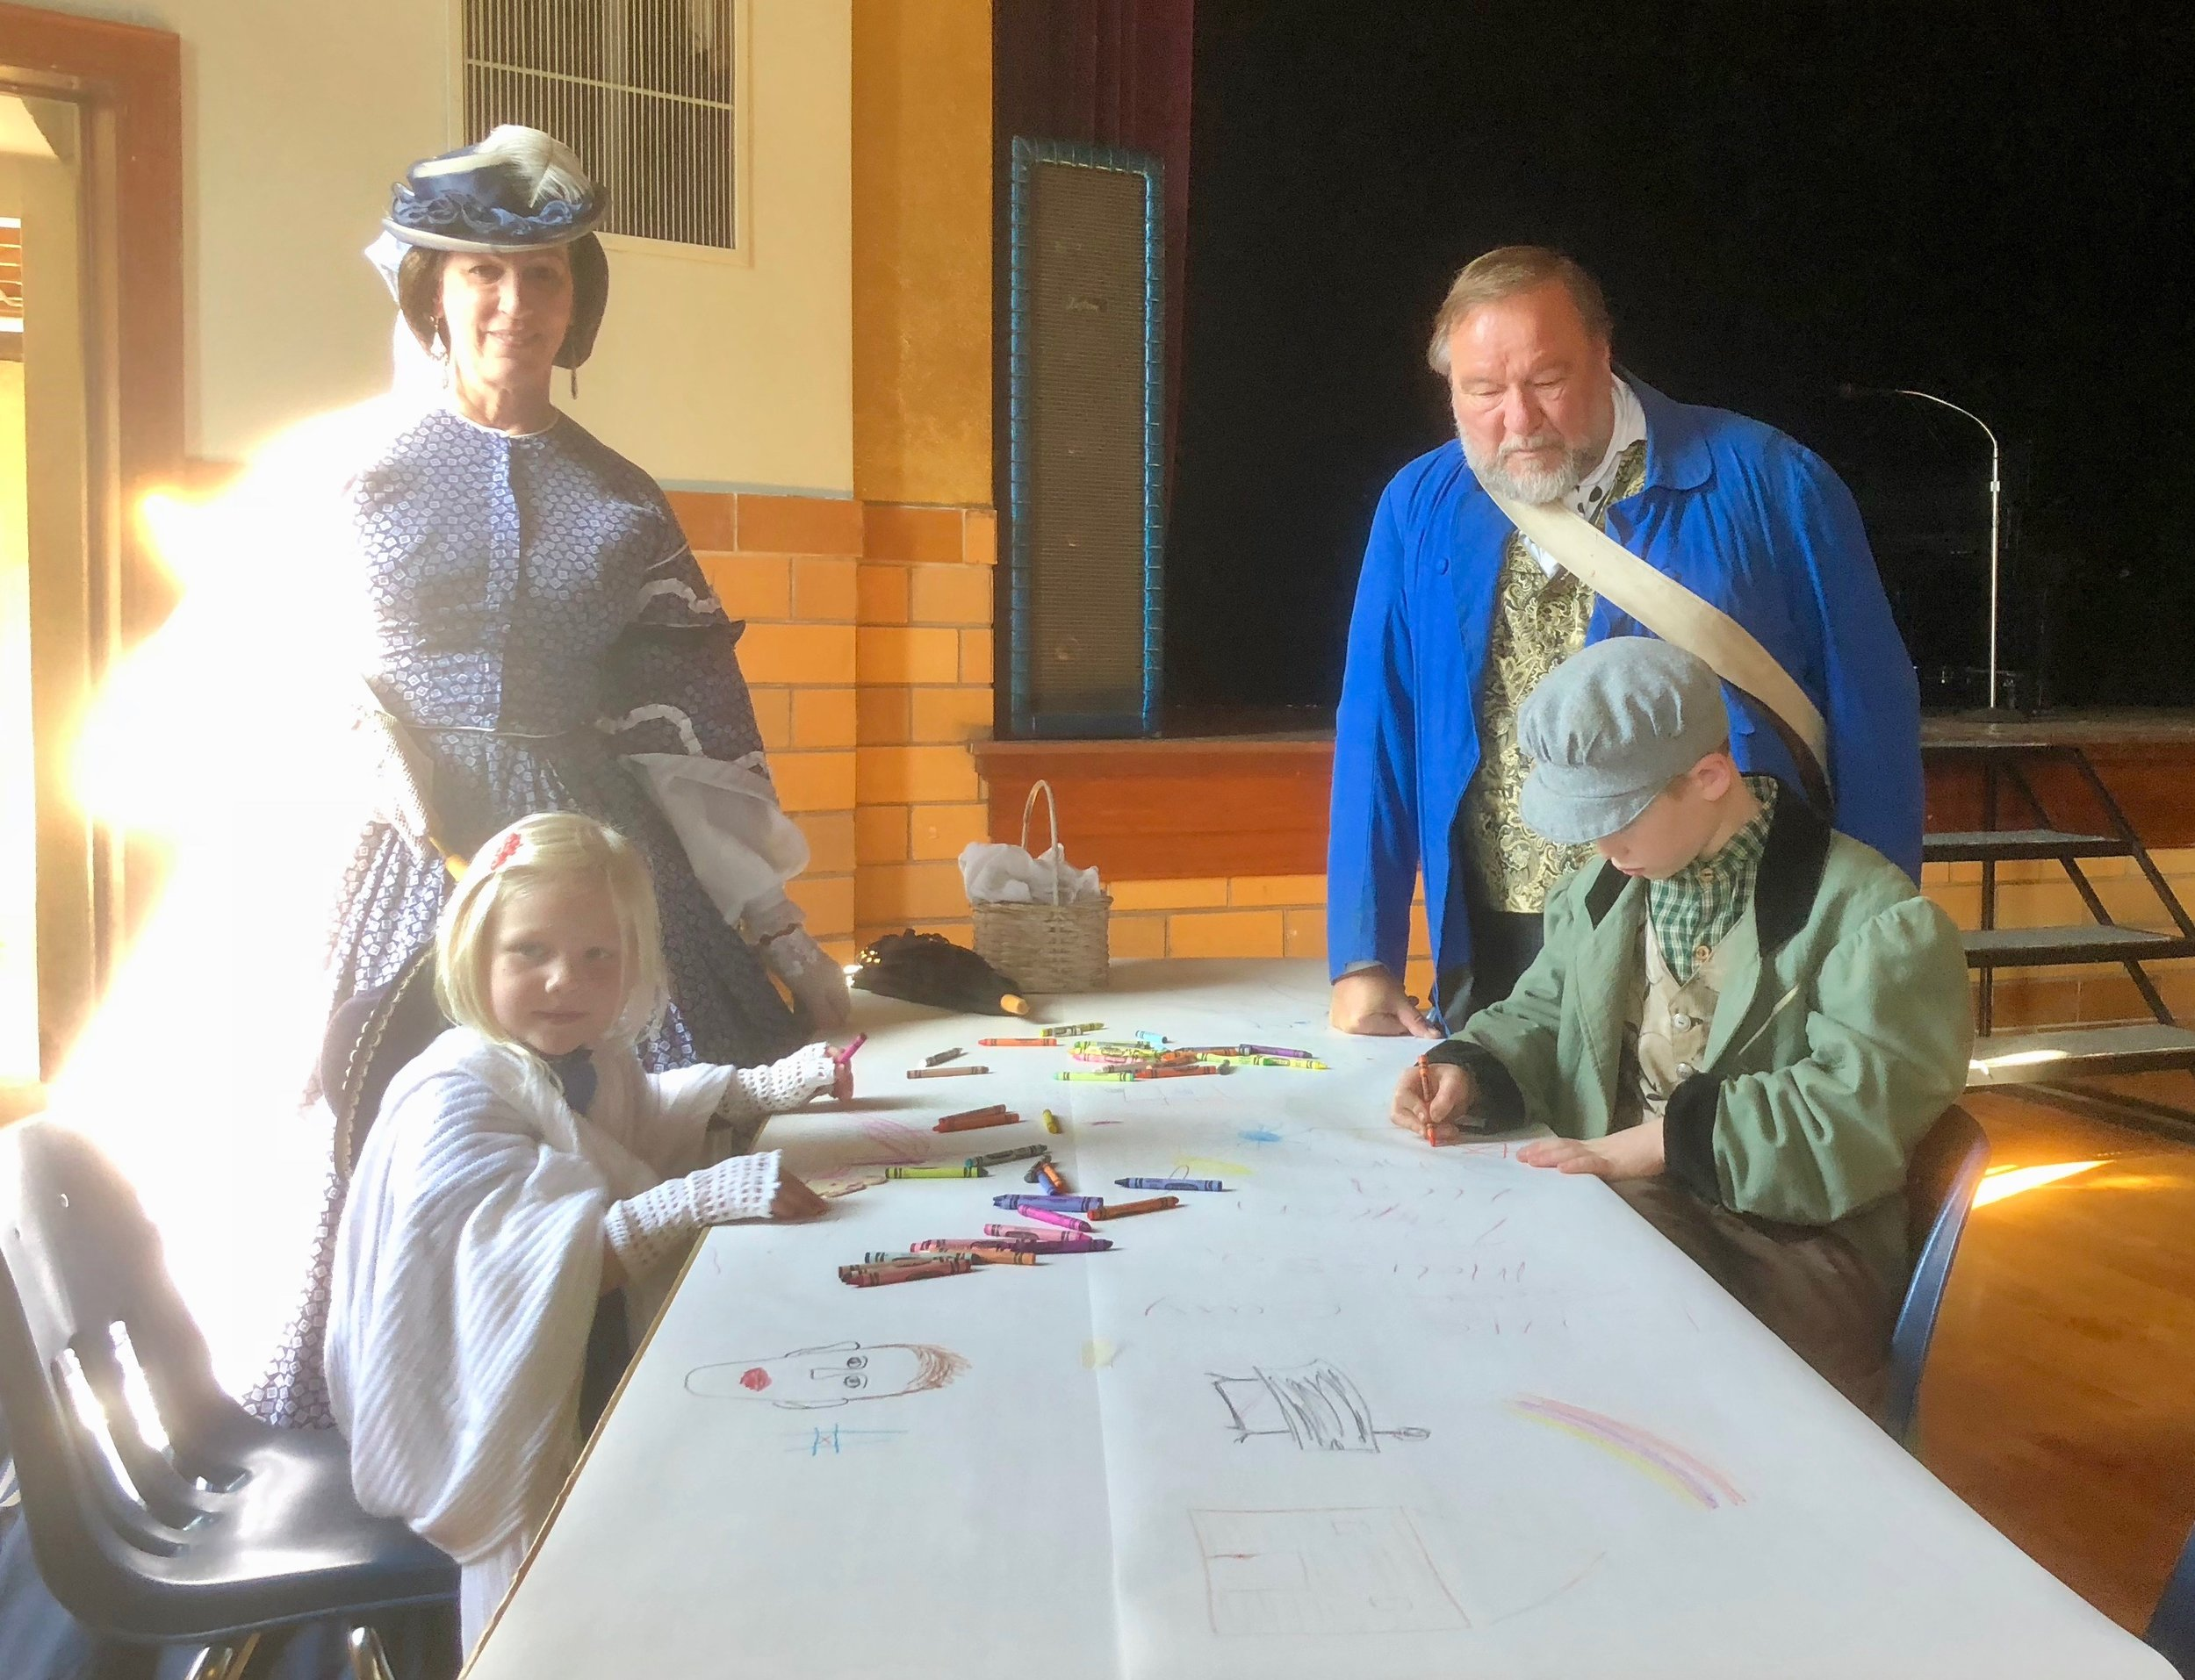 Visitors participate at our crafts tables at Living History of Civil War event in Lexington. -Oct '18